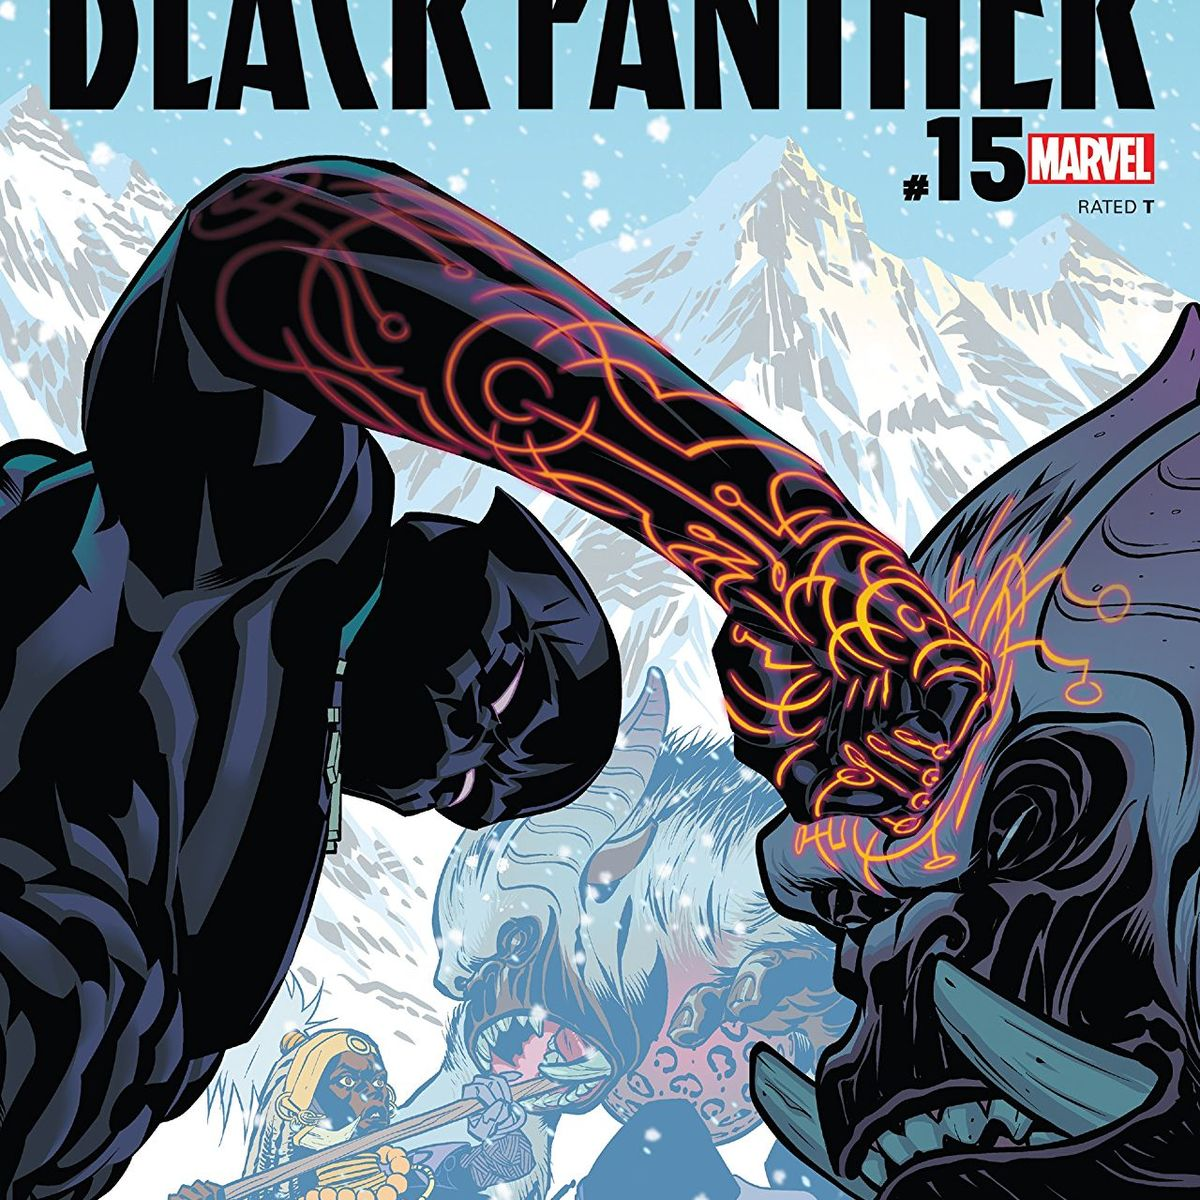 blackpanther_manape_comiccover_coates.jpg